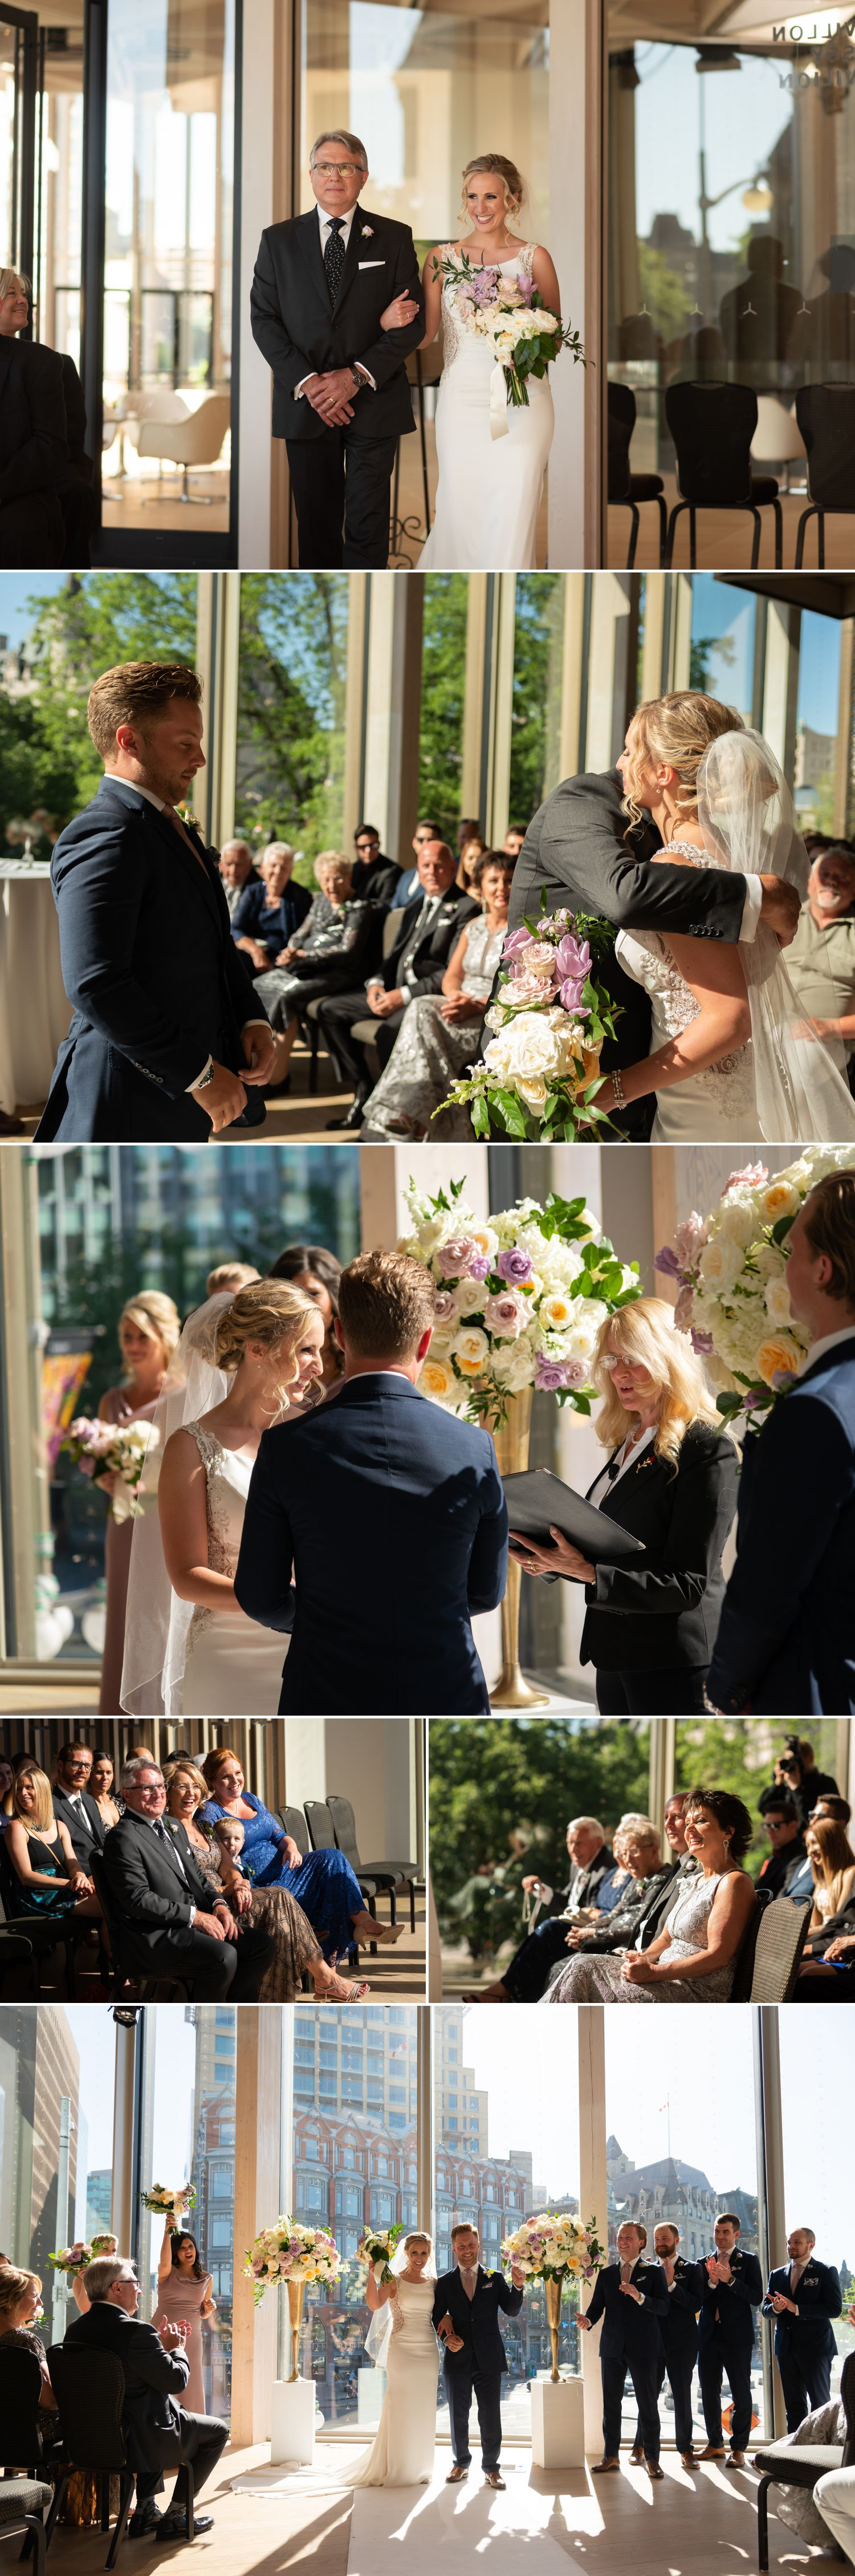 A wedding ceremony taking place in The National Arts Centre in downtown Ottawa